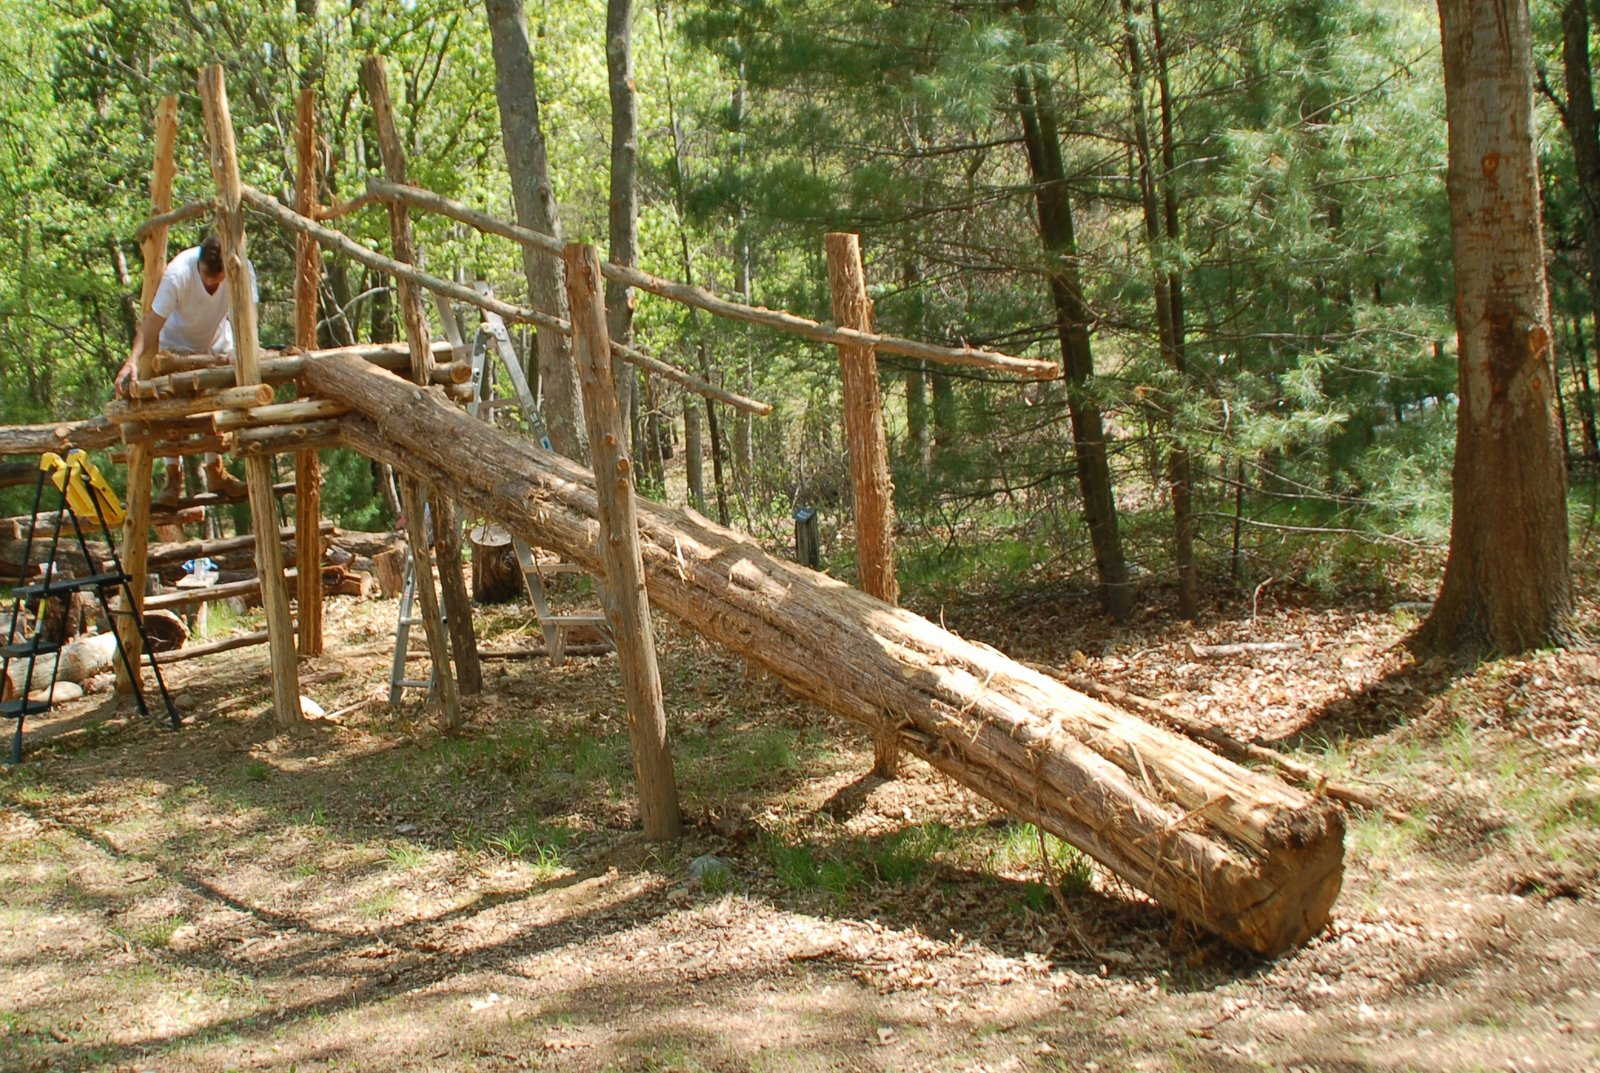 The aspetuck land trust blog natural playground build session may 22 - Natural playgrounds for children ...